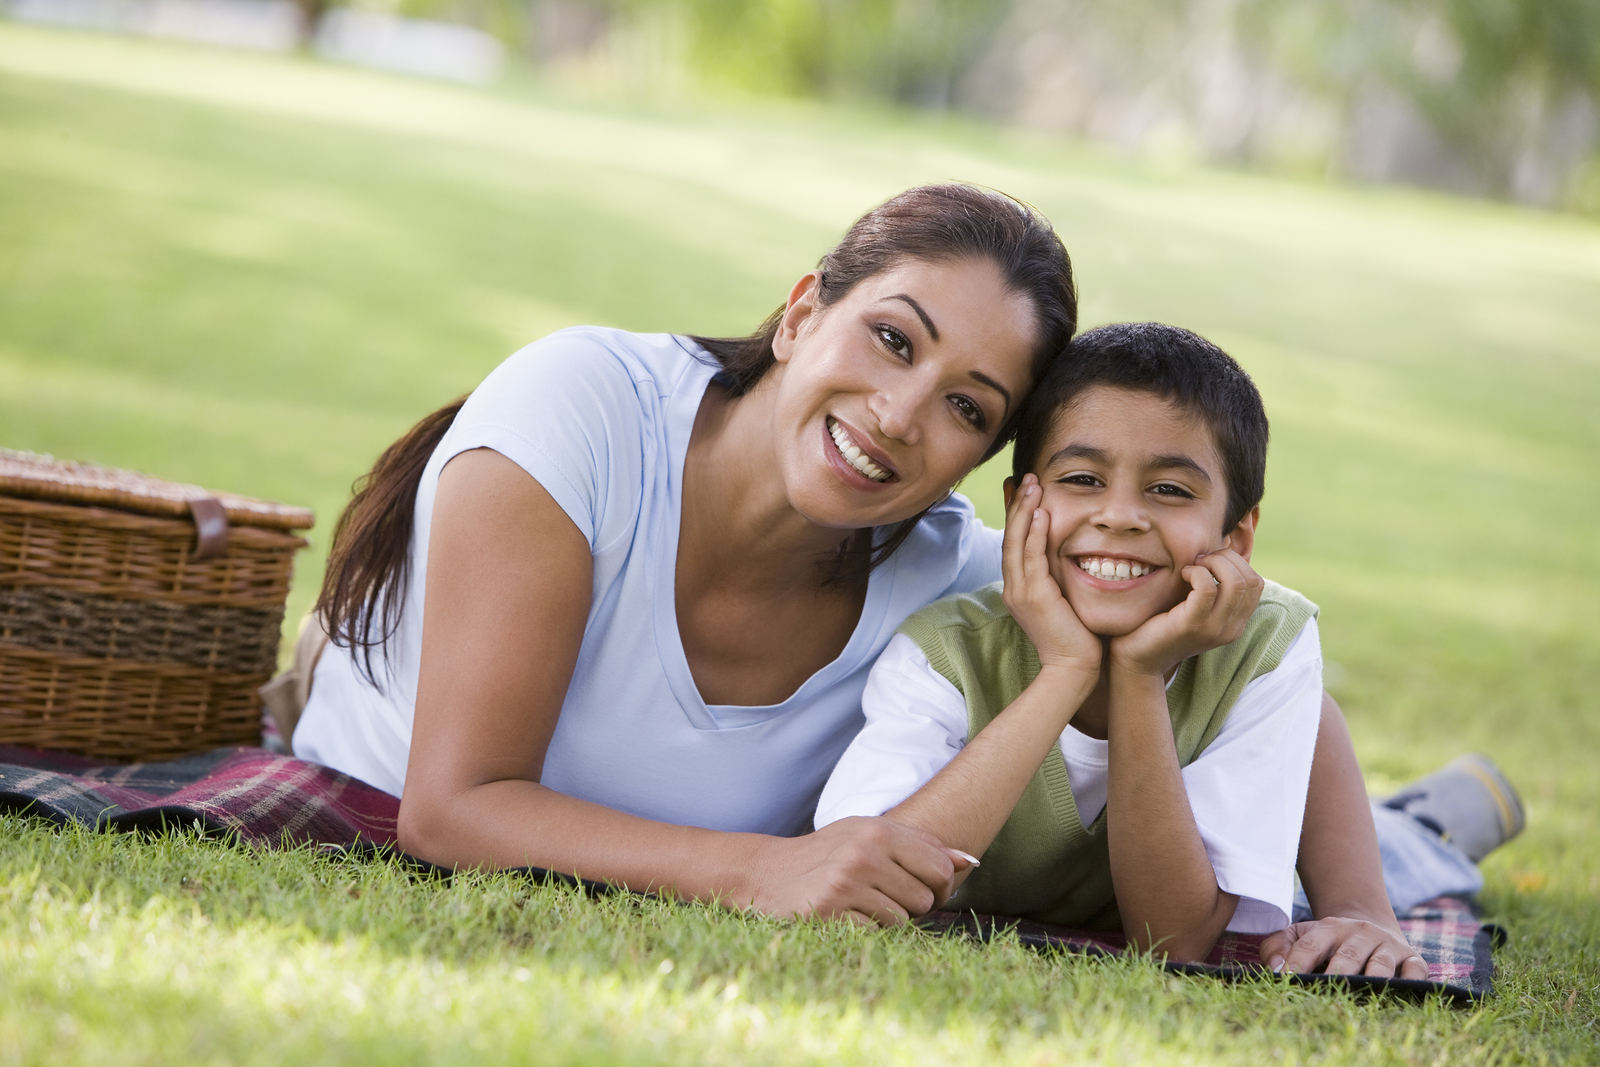 toxey single parents Divorced and single parents' number one complaint when looking for a potential relationship lack of time luckily, meeting that special someone doesn't have to mean a time-consuming break from regular life with your kiddo.